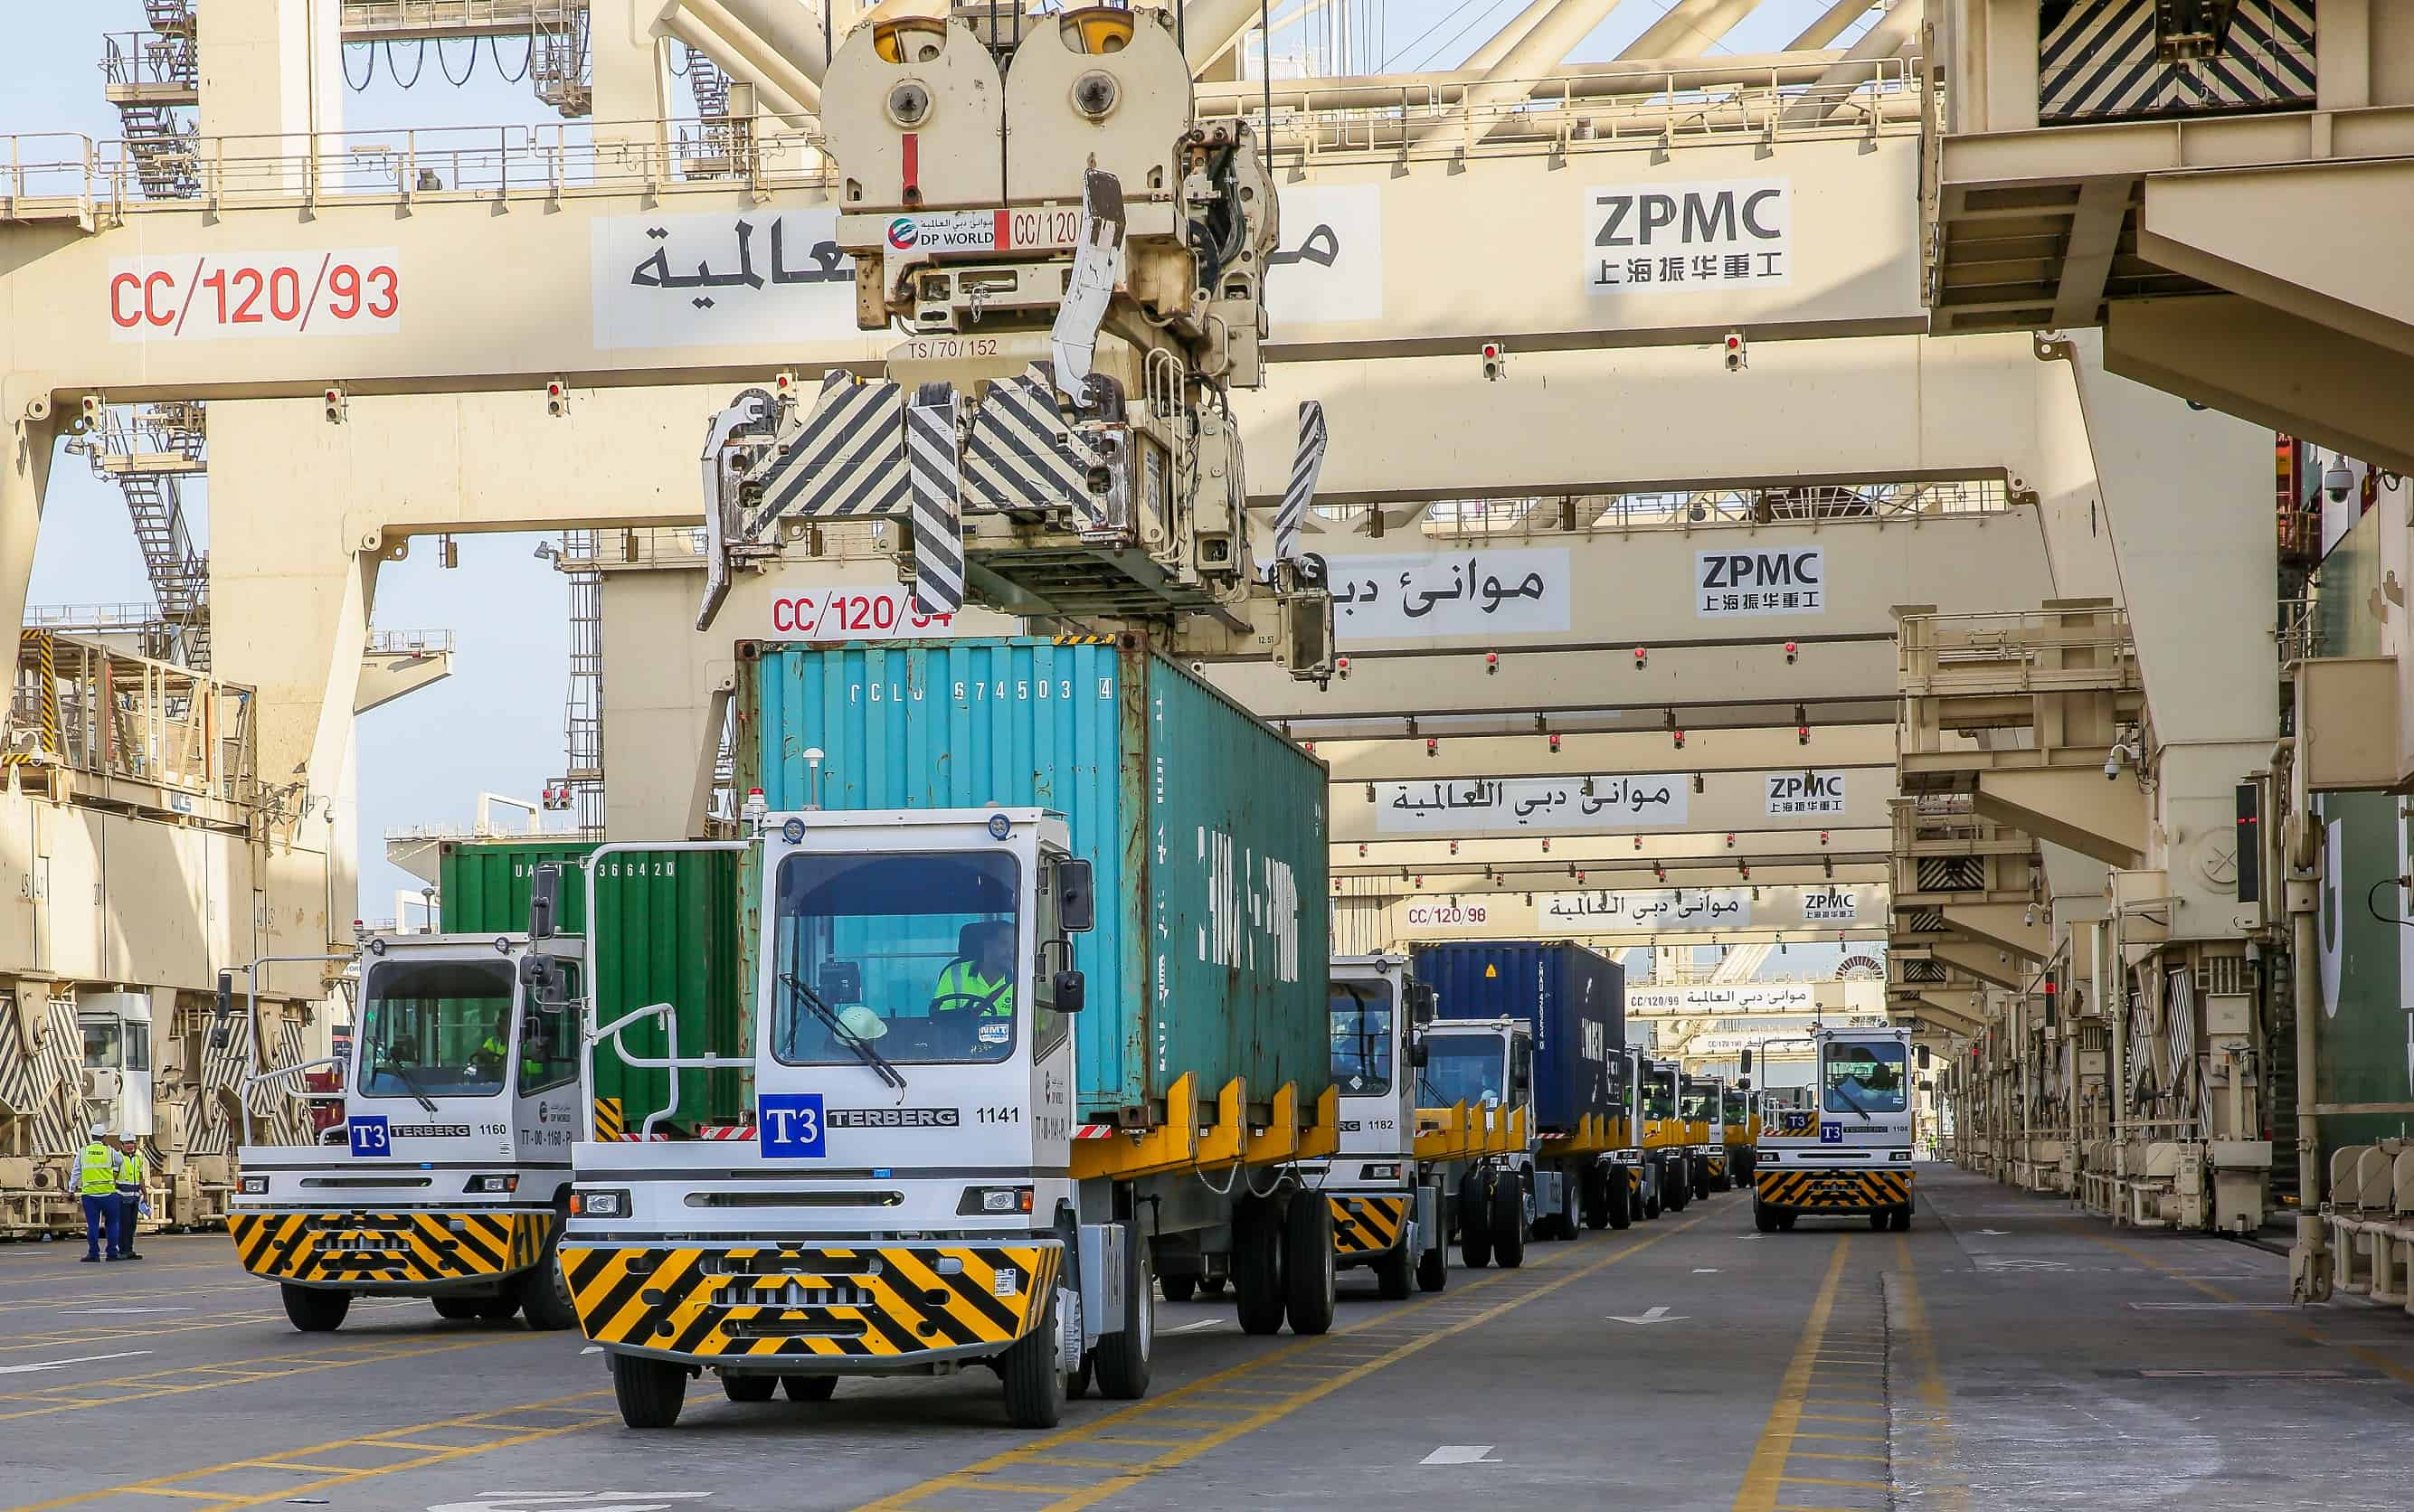 DP World orders 238 Terberg terminal tractors for Jebel Ali